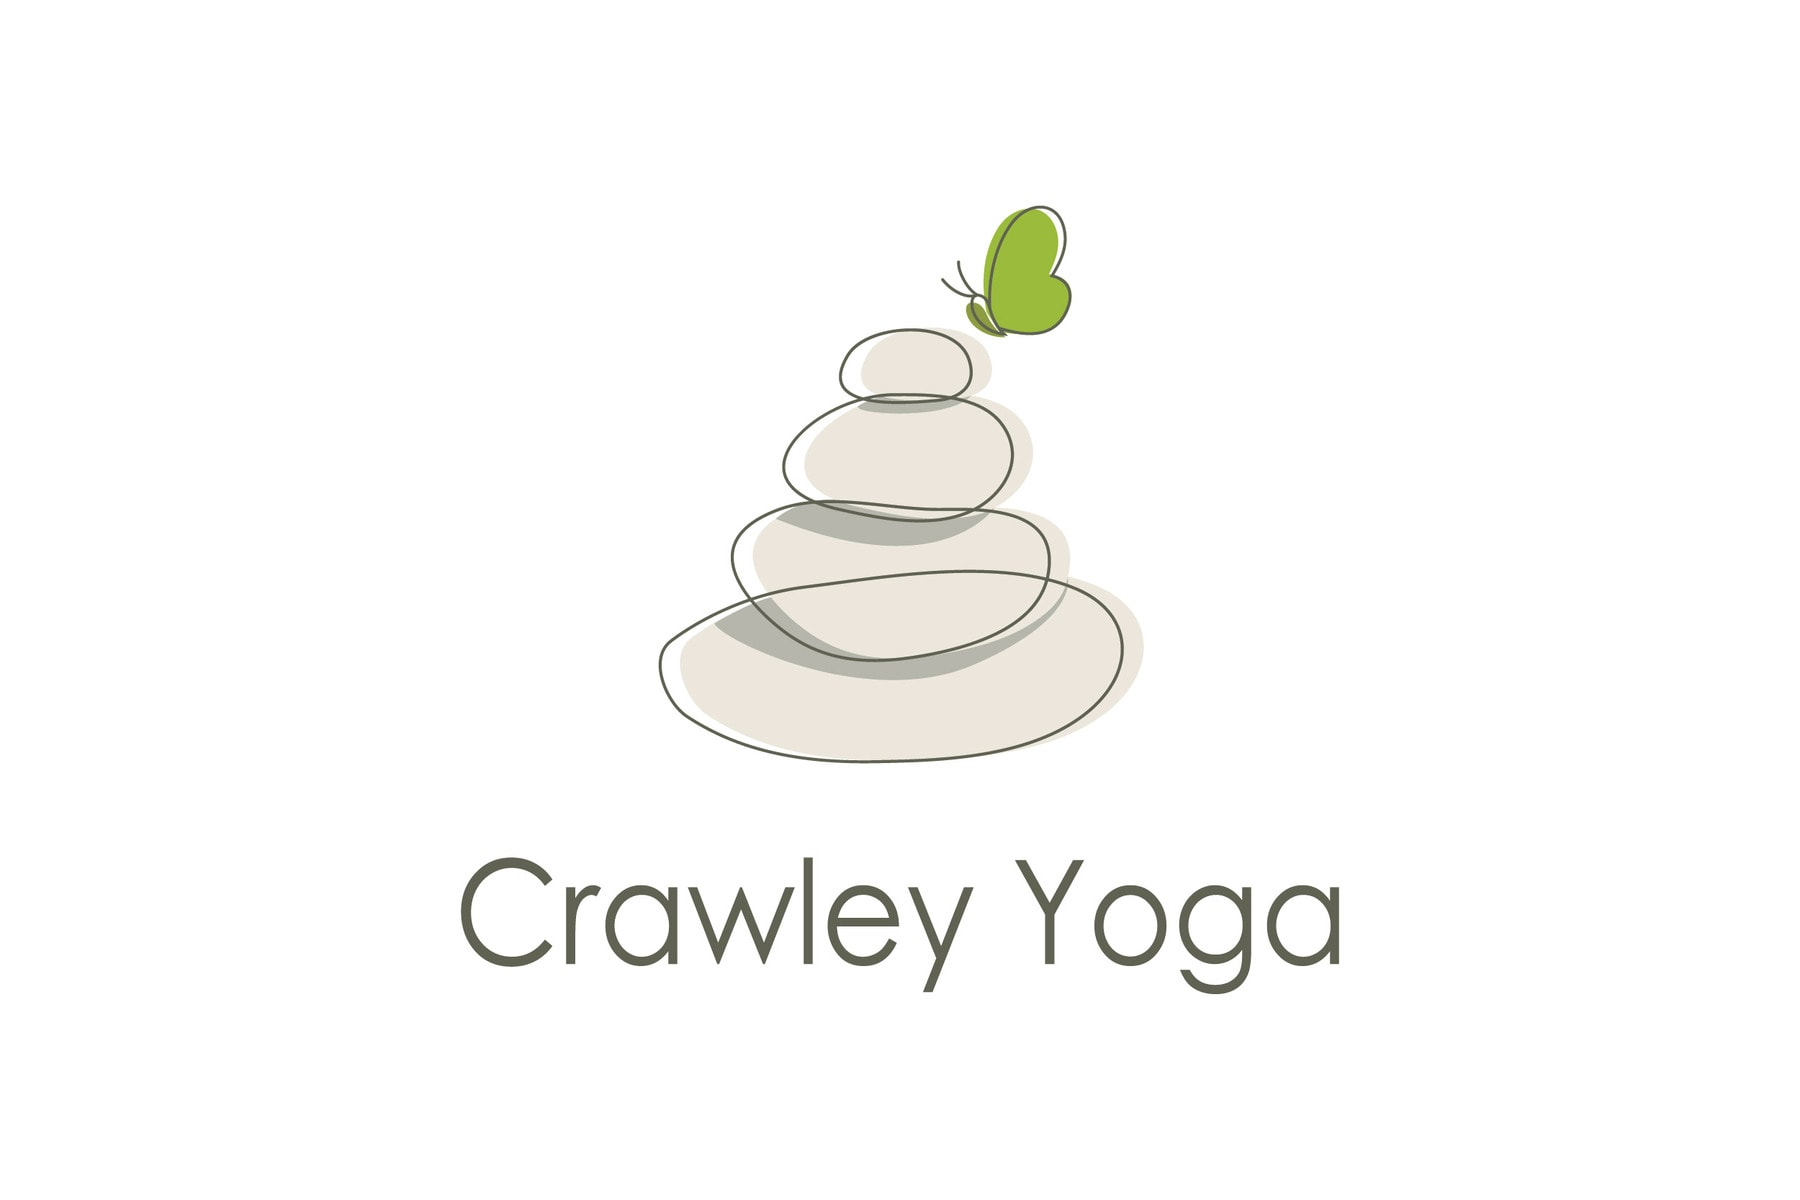 Crawley Yoga